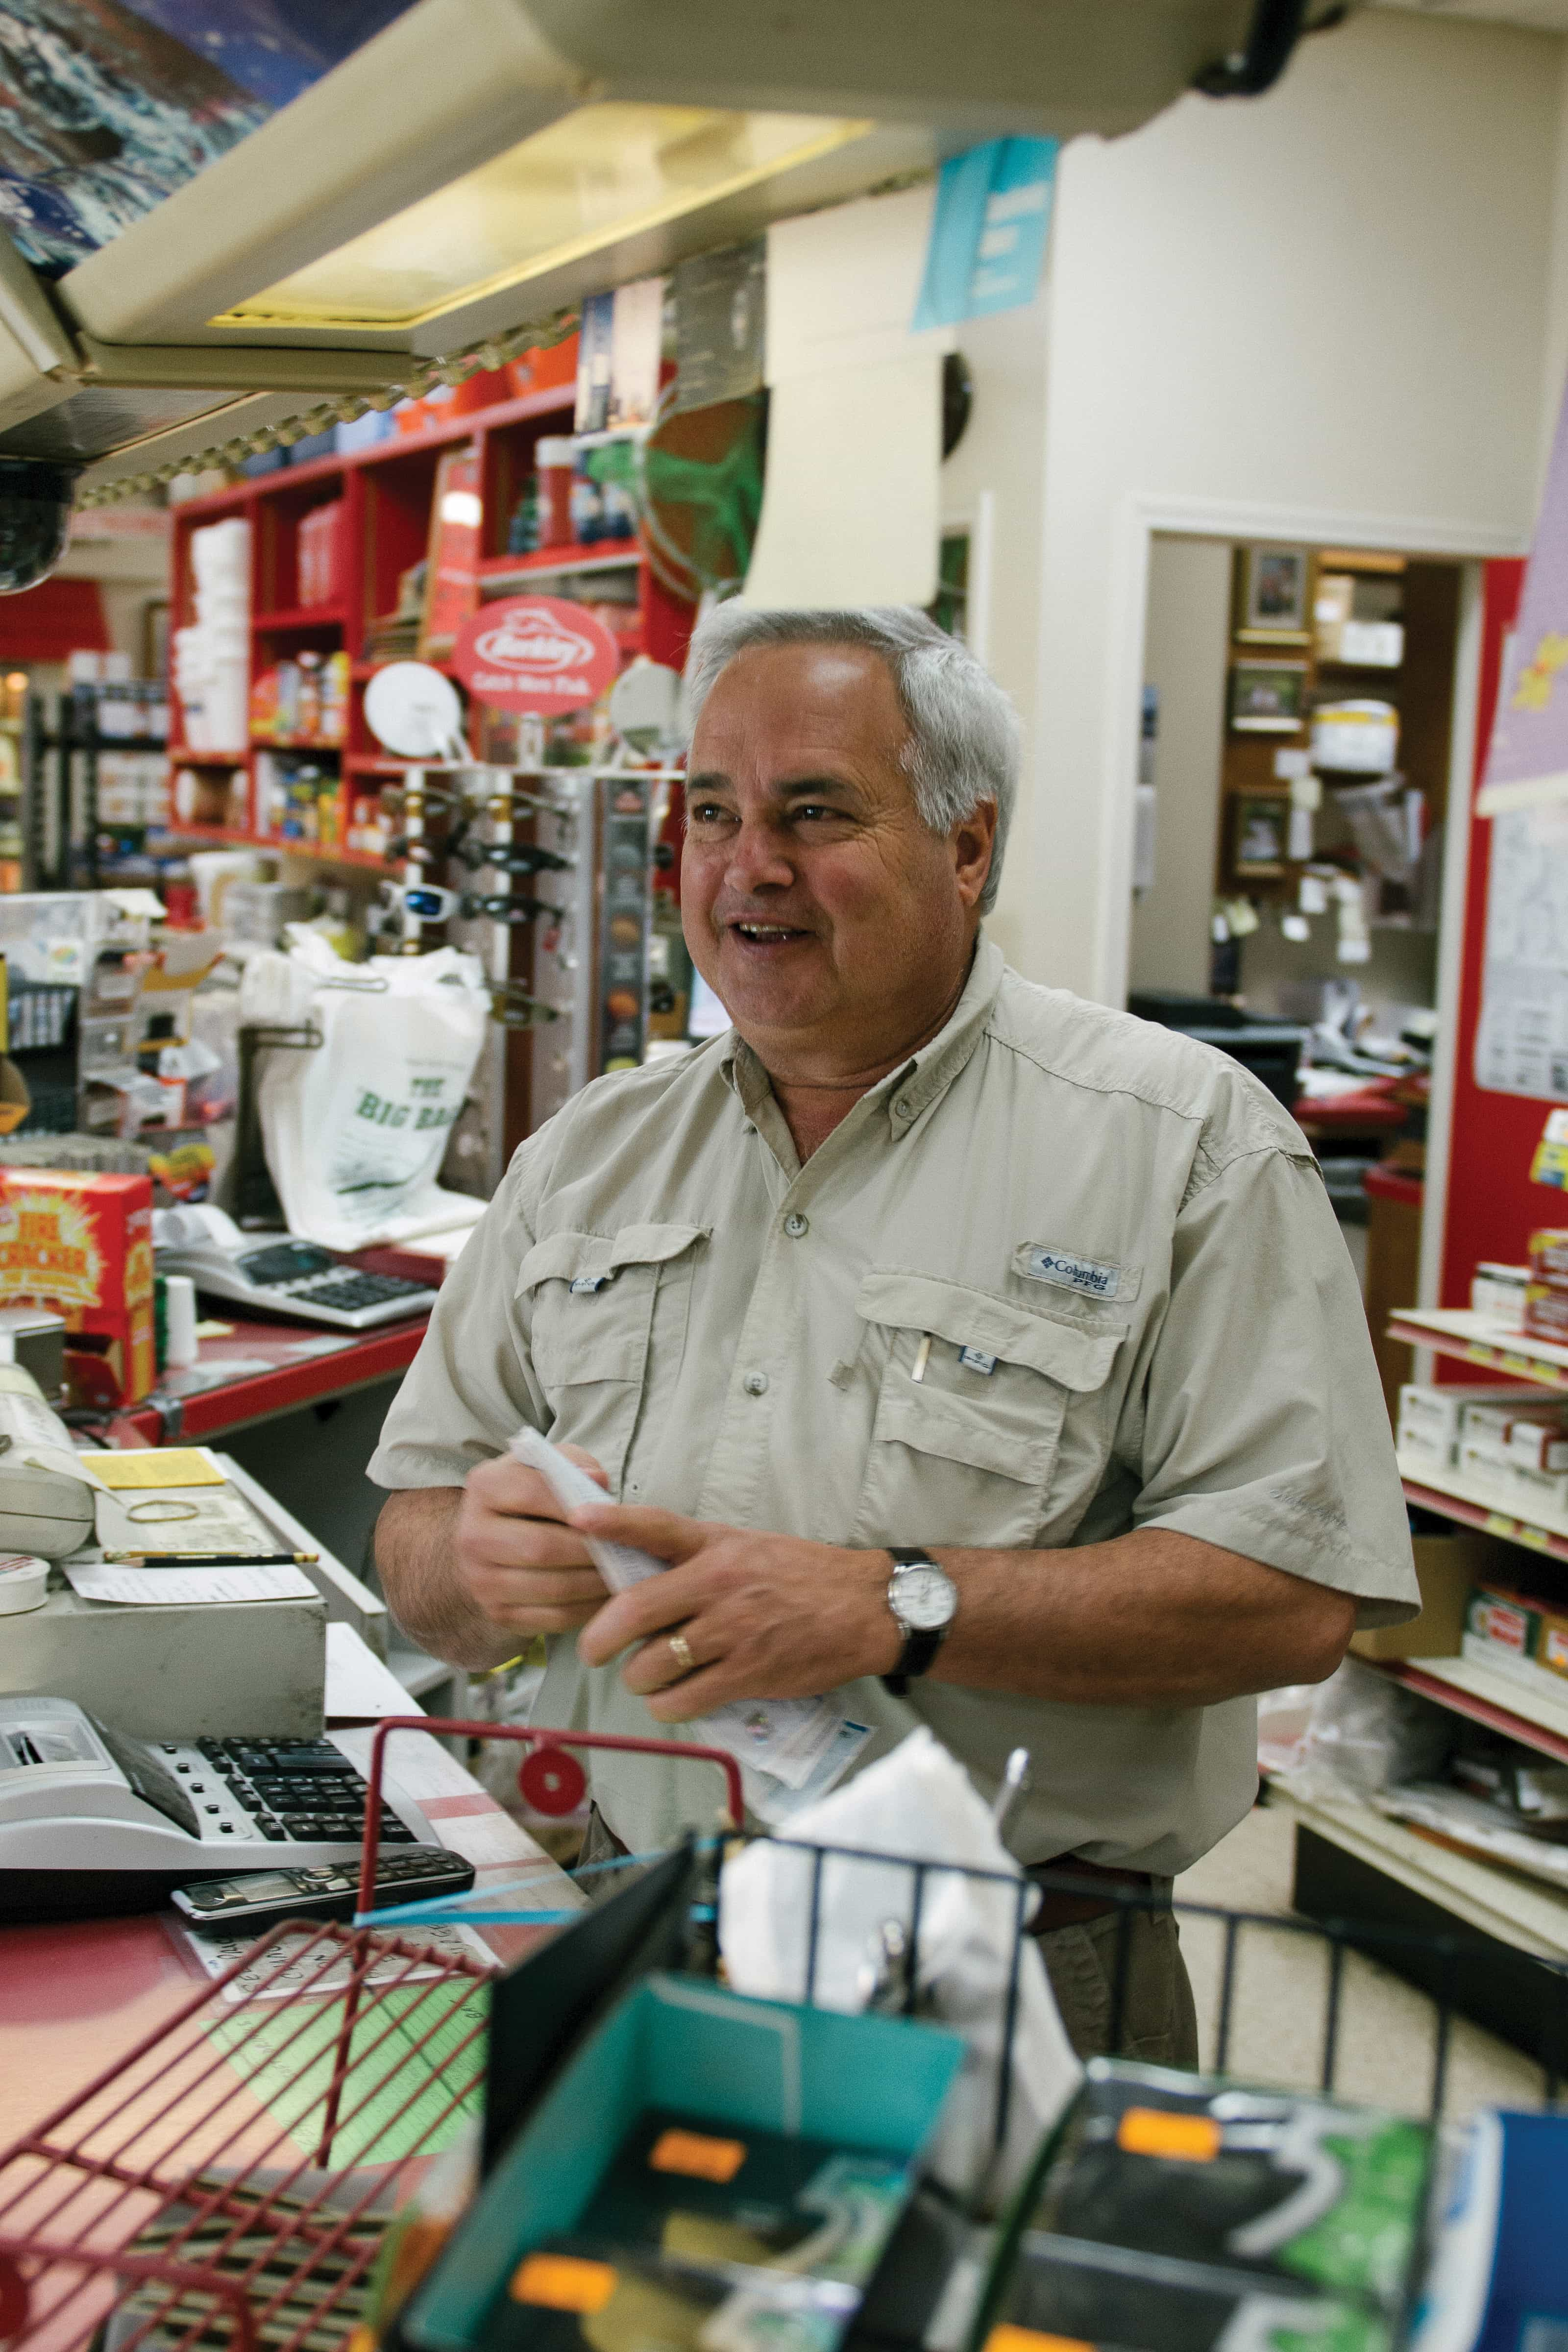 Mark Fratesi laughs while talking to a regular customer.